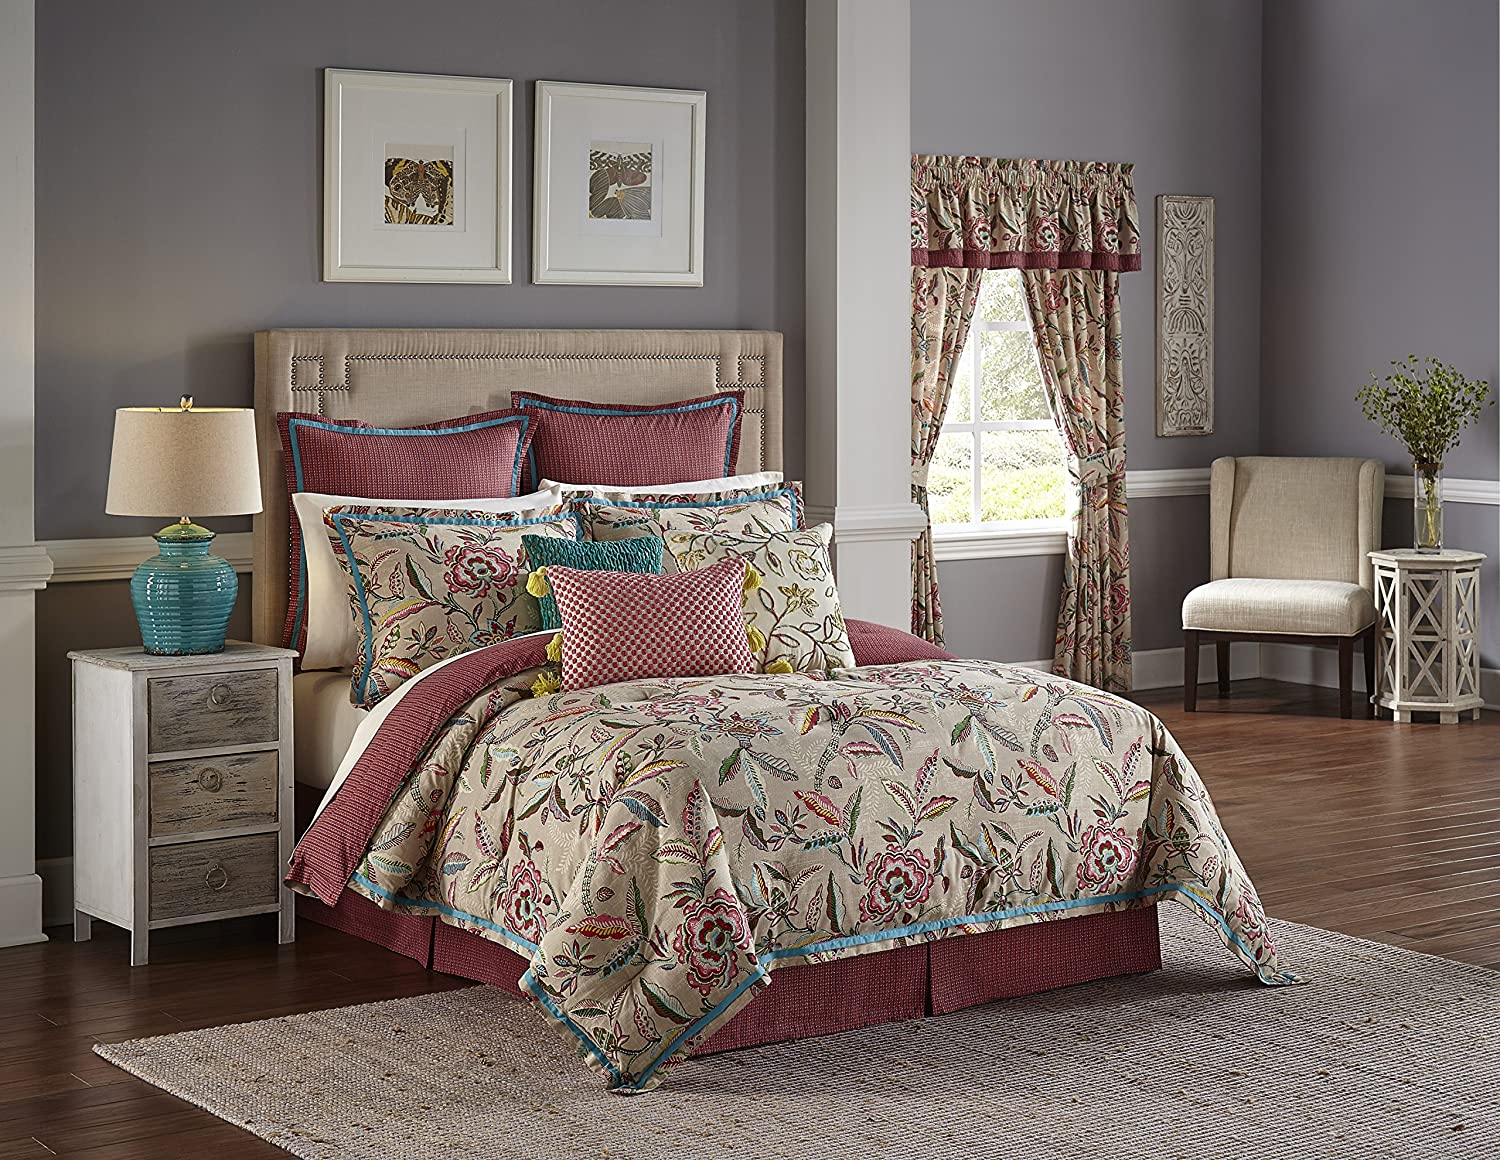 WAVERLY 16896BEDDKNGJBL Key of Life Reversible Comforter Collection King Jubilee Ellery Homestyles